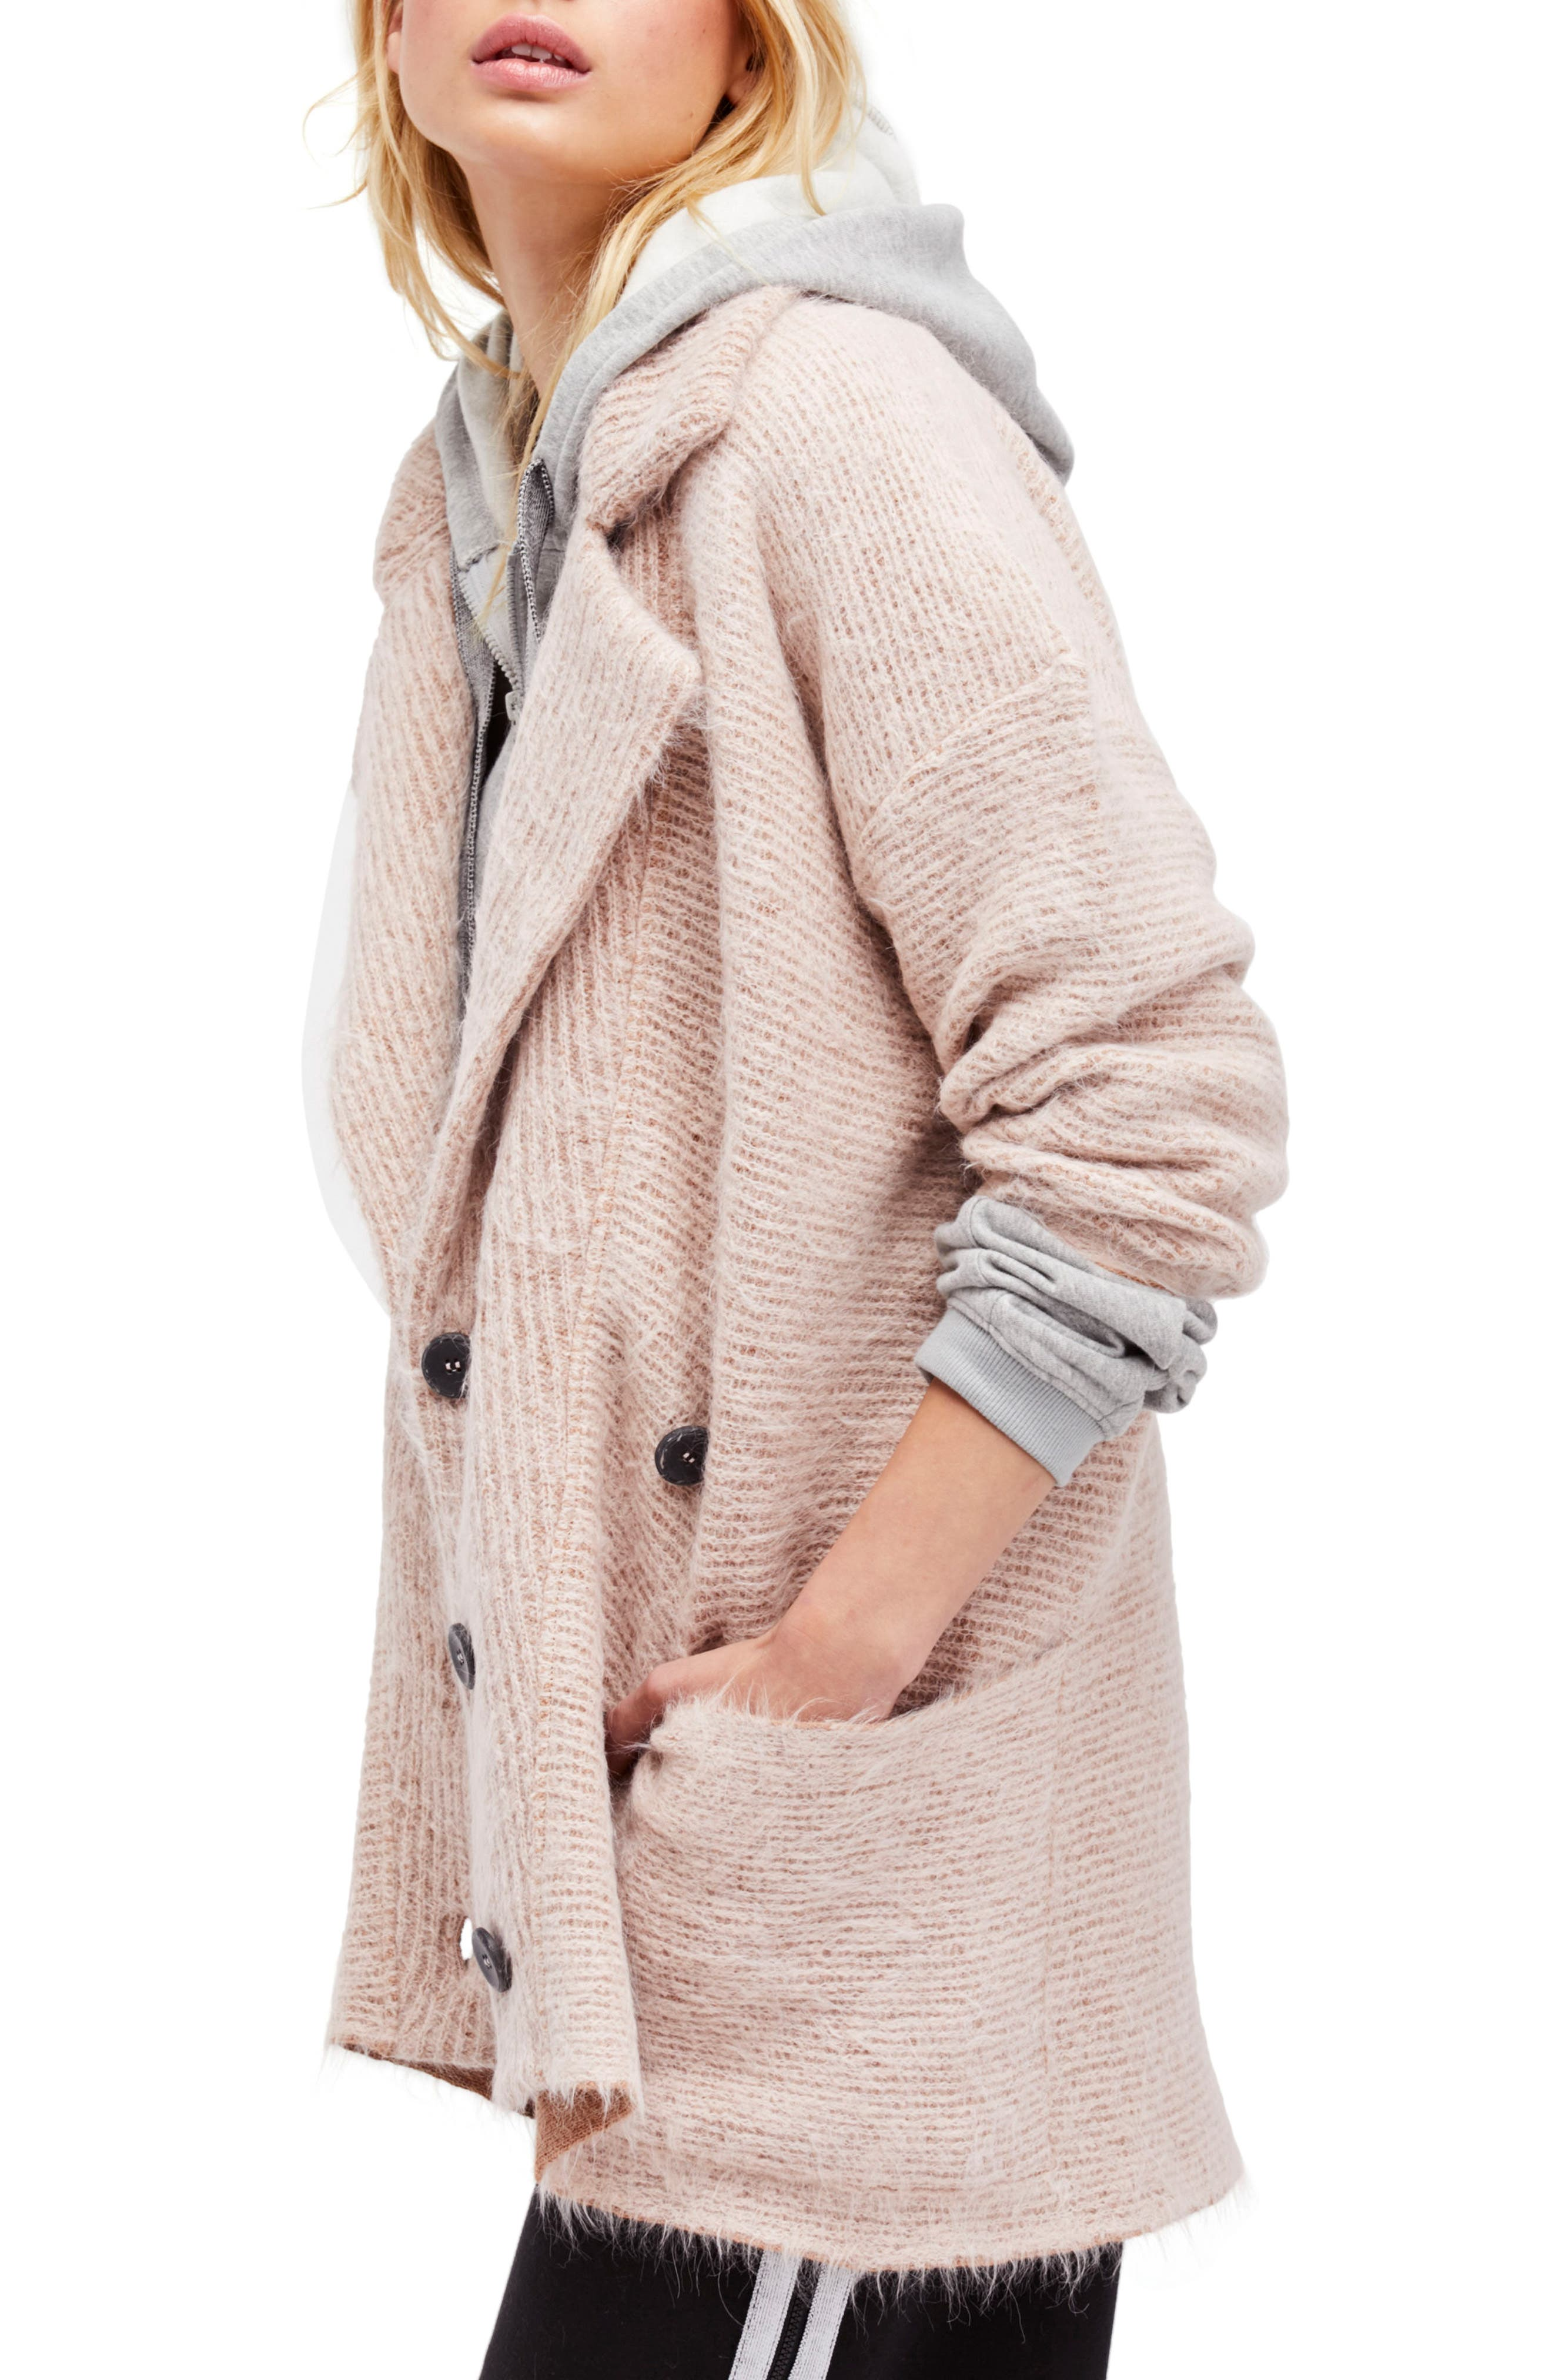 Take Two Sweater Coat,                         Main,                         color, Rose